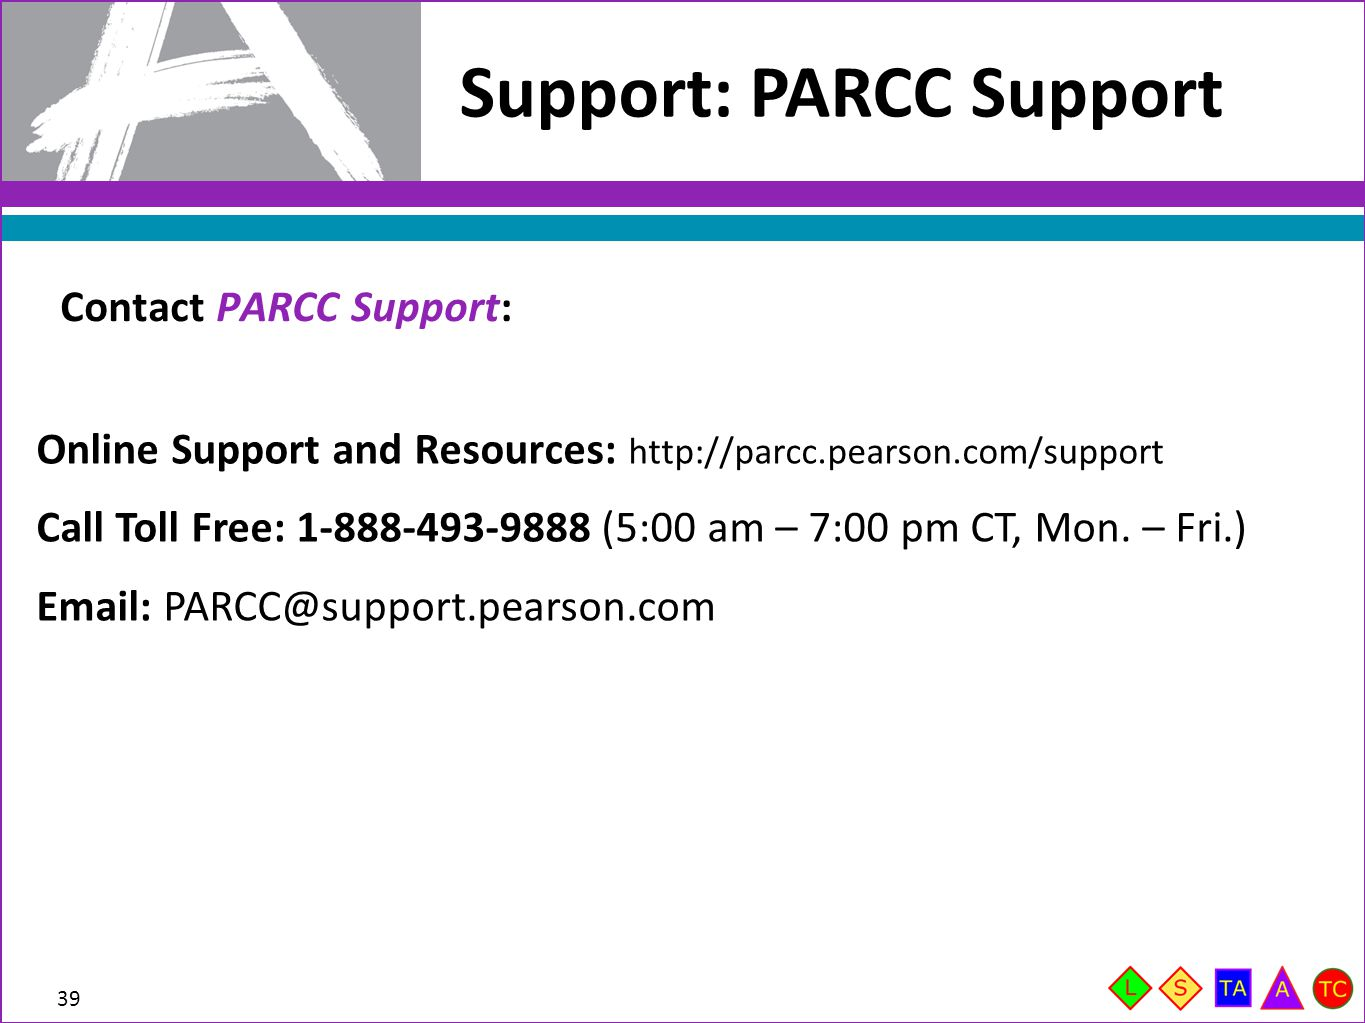 Support: PARCC Support